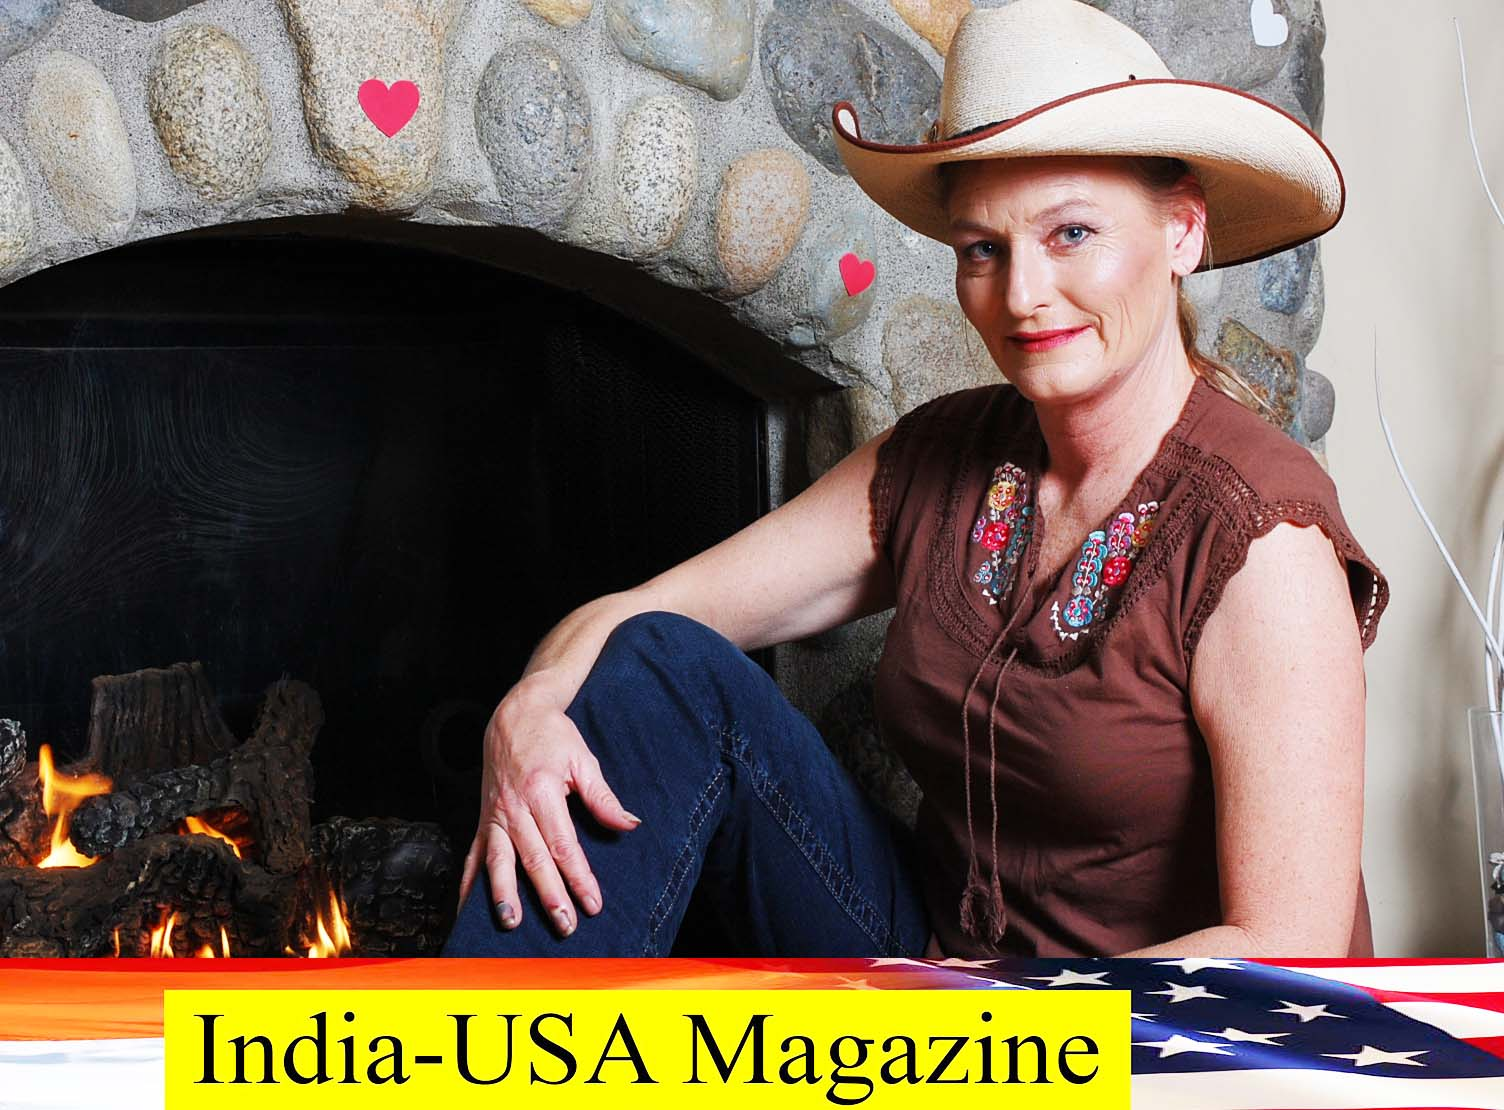 India-USA Magazine Photography